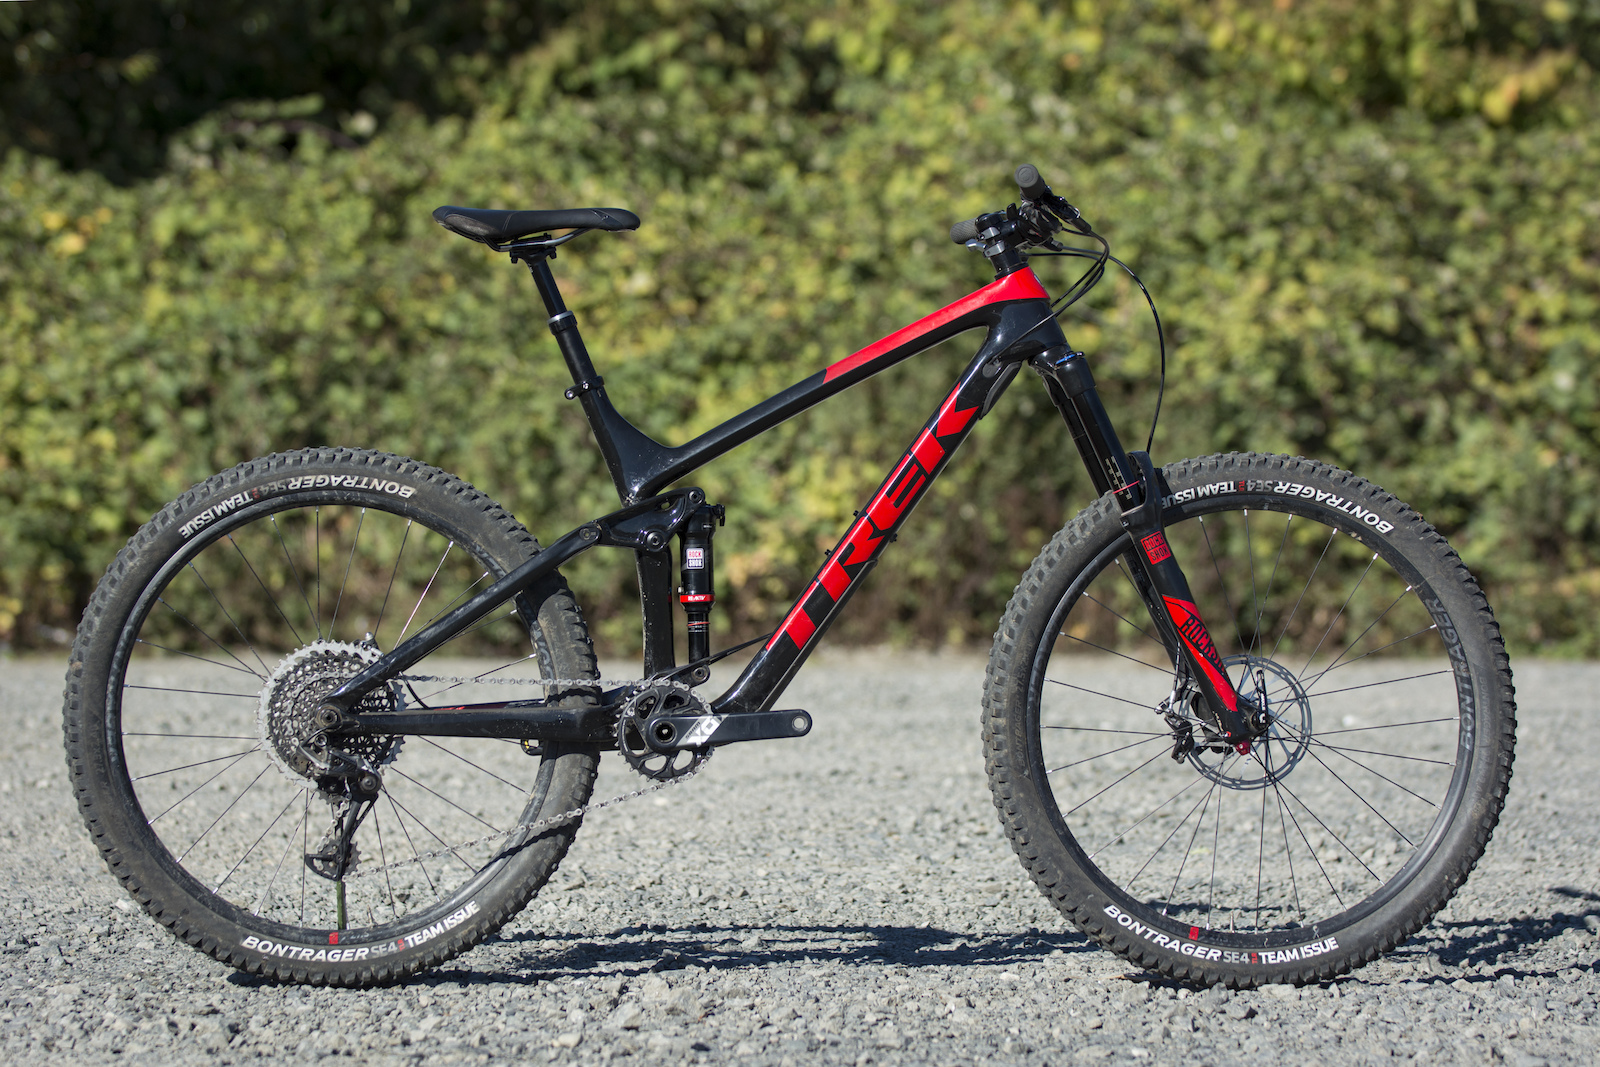 dbdf8e6b703 Trek Remedy 9.9 RSL - Review - Pinkbike